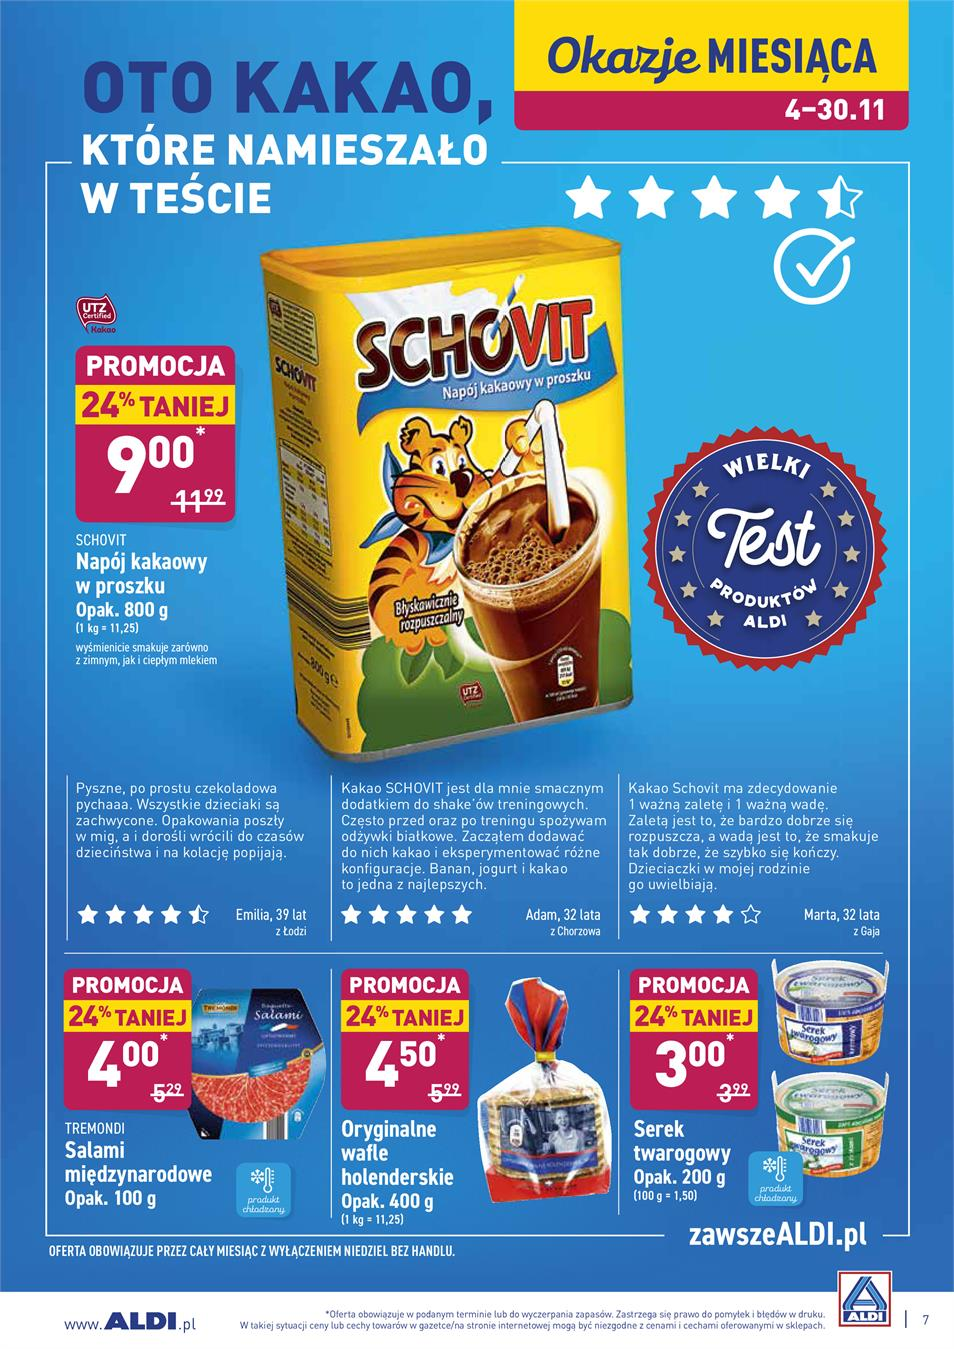 Gazetka ALDI SP Z O O  nr 7 od 2019-11-12 do 2019-11-16